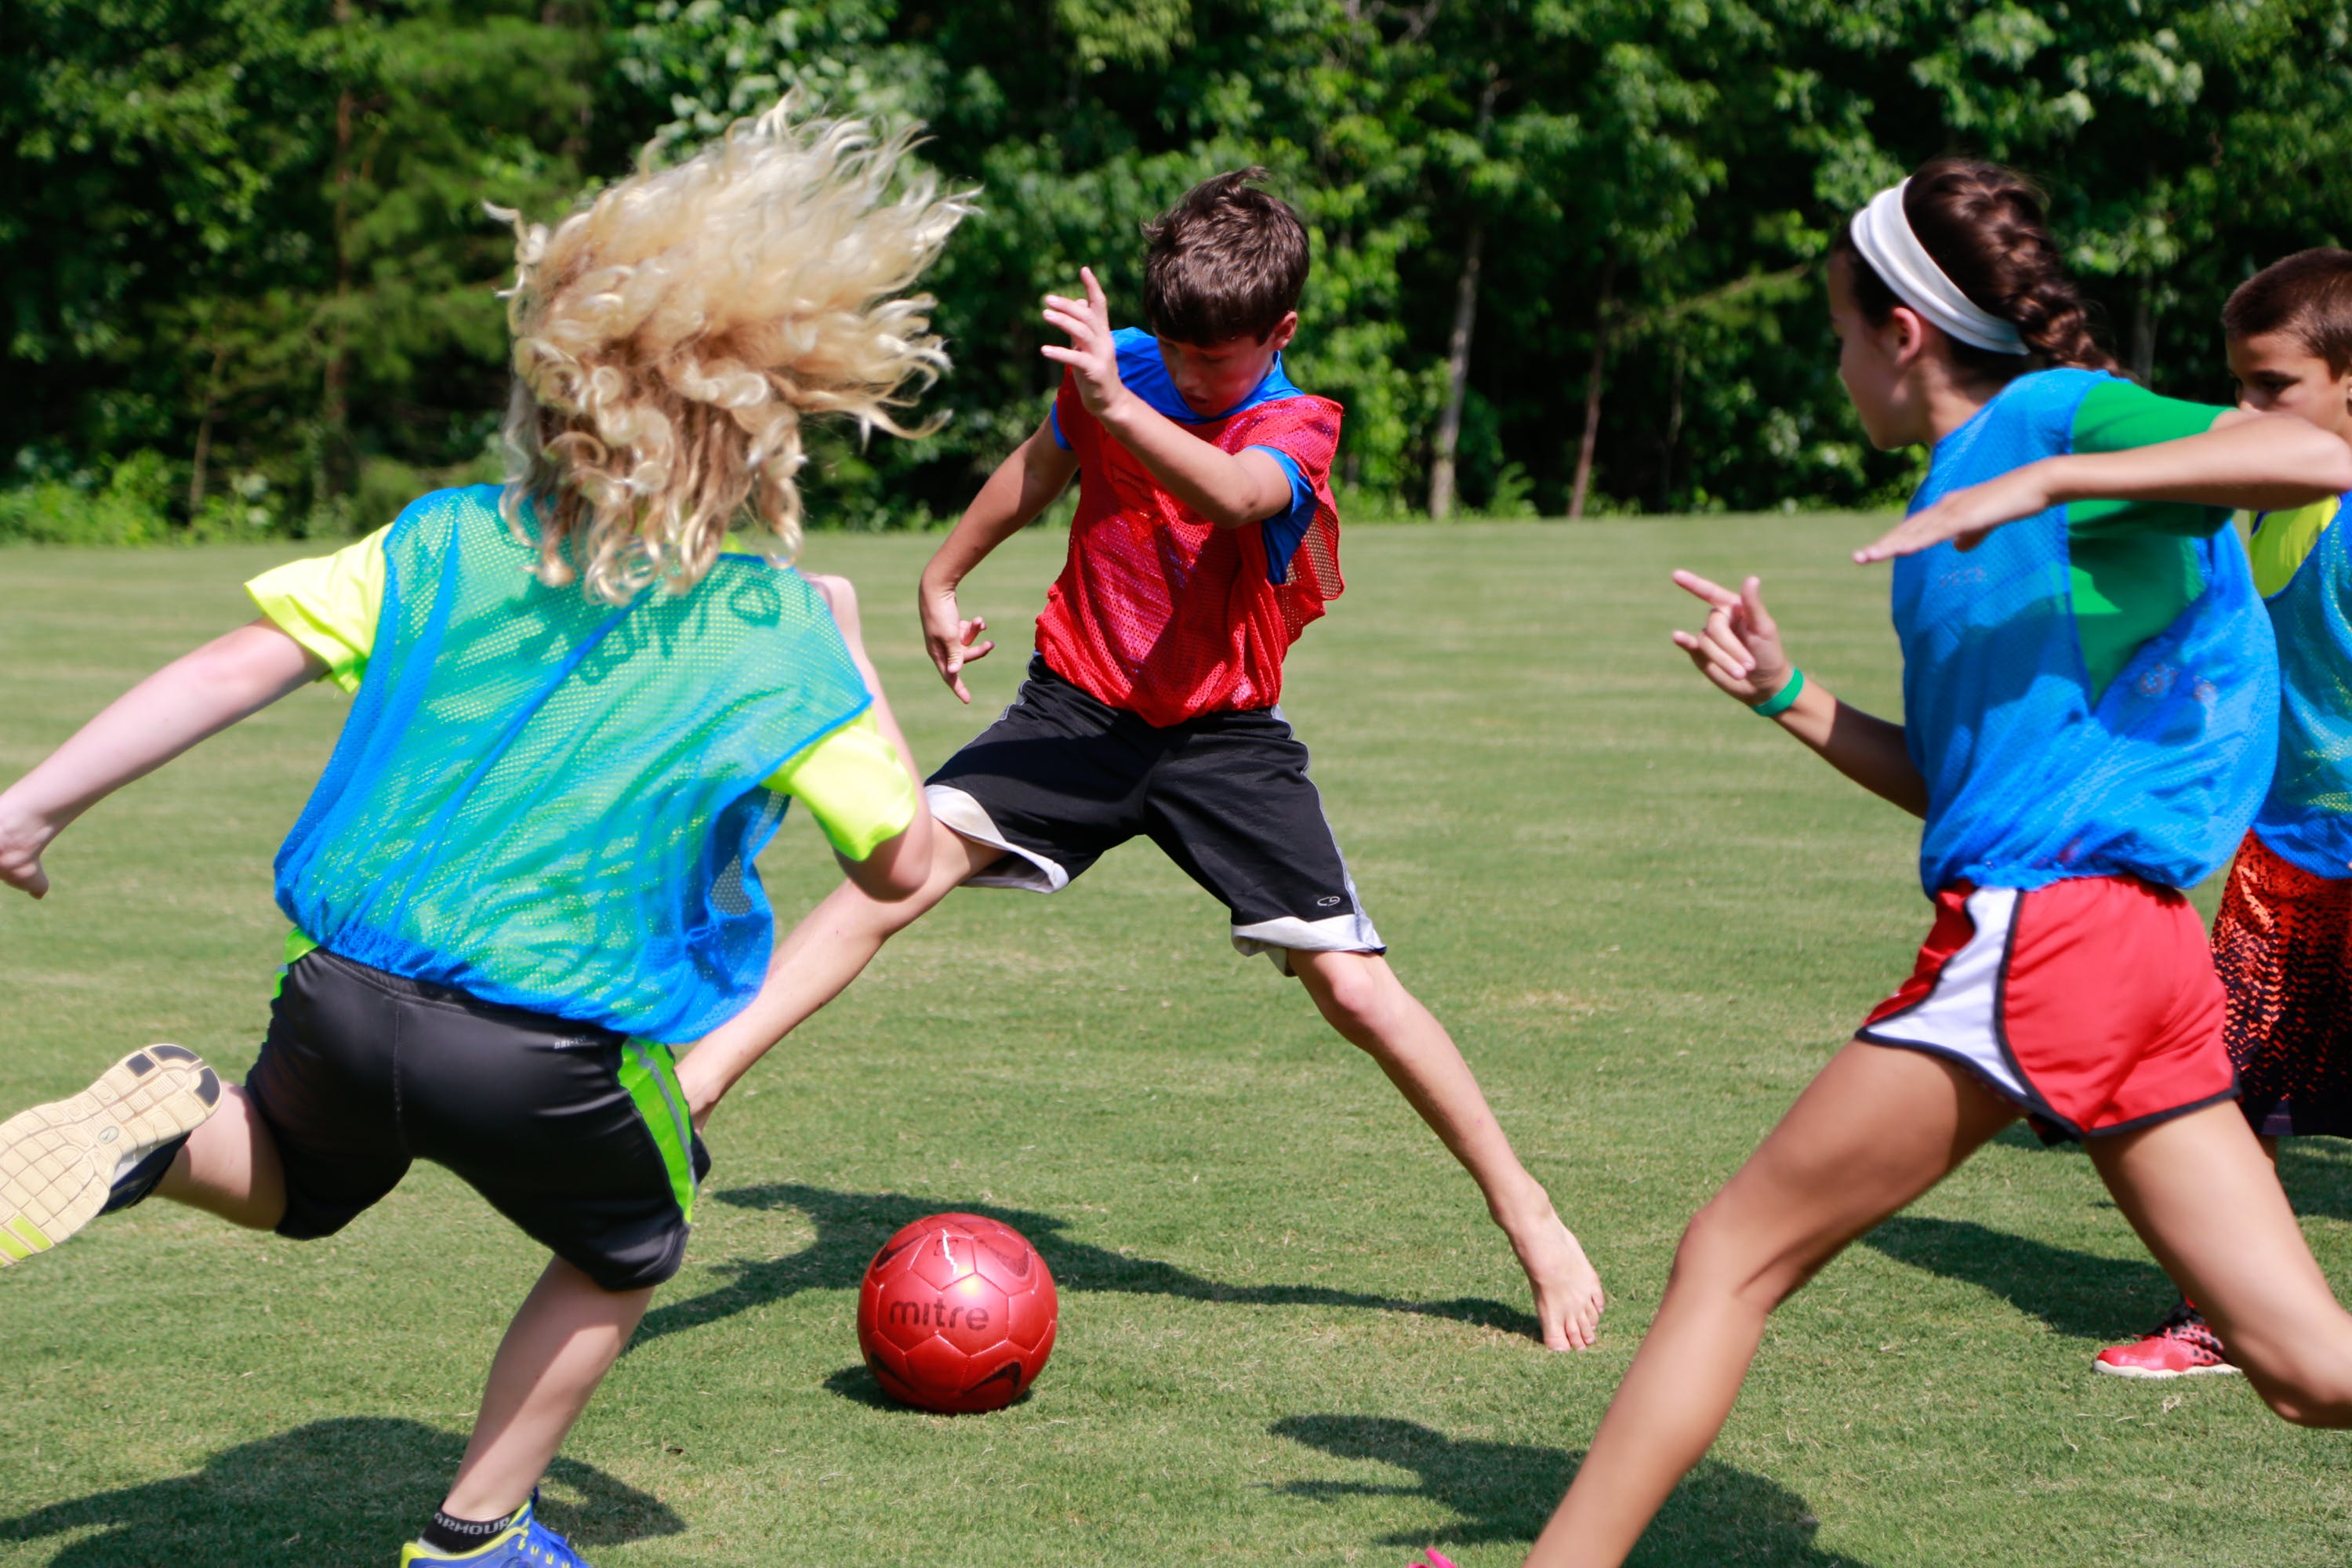 Strong rock summer camp north georgia skills classes soccer.jpg?ixlib=rails 2.1